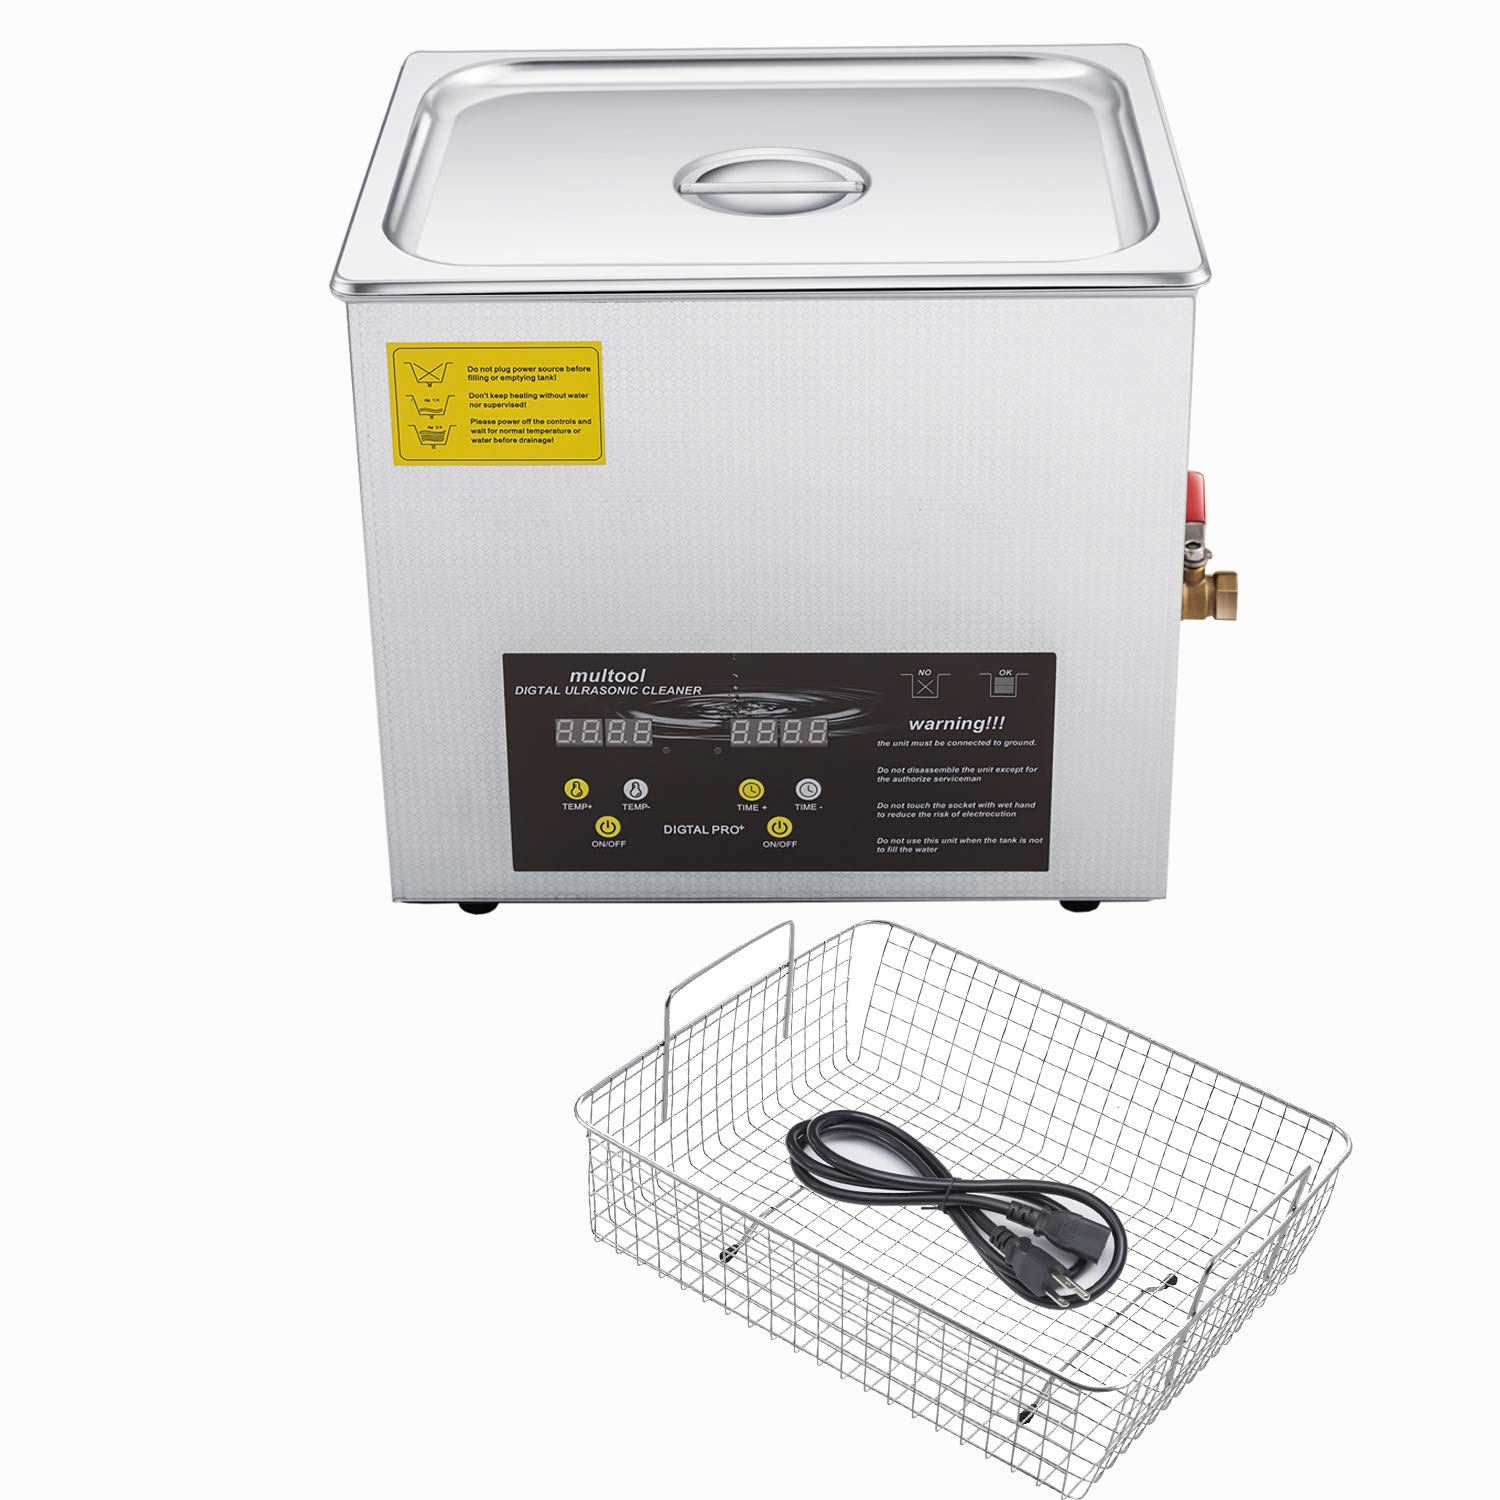 Ultrasonic Cleaner with Digital Heater Timer,15 Liters Capacity,Adjustable Power,Parts Basket by multool